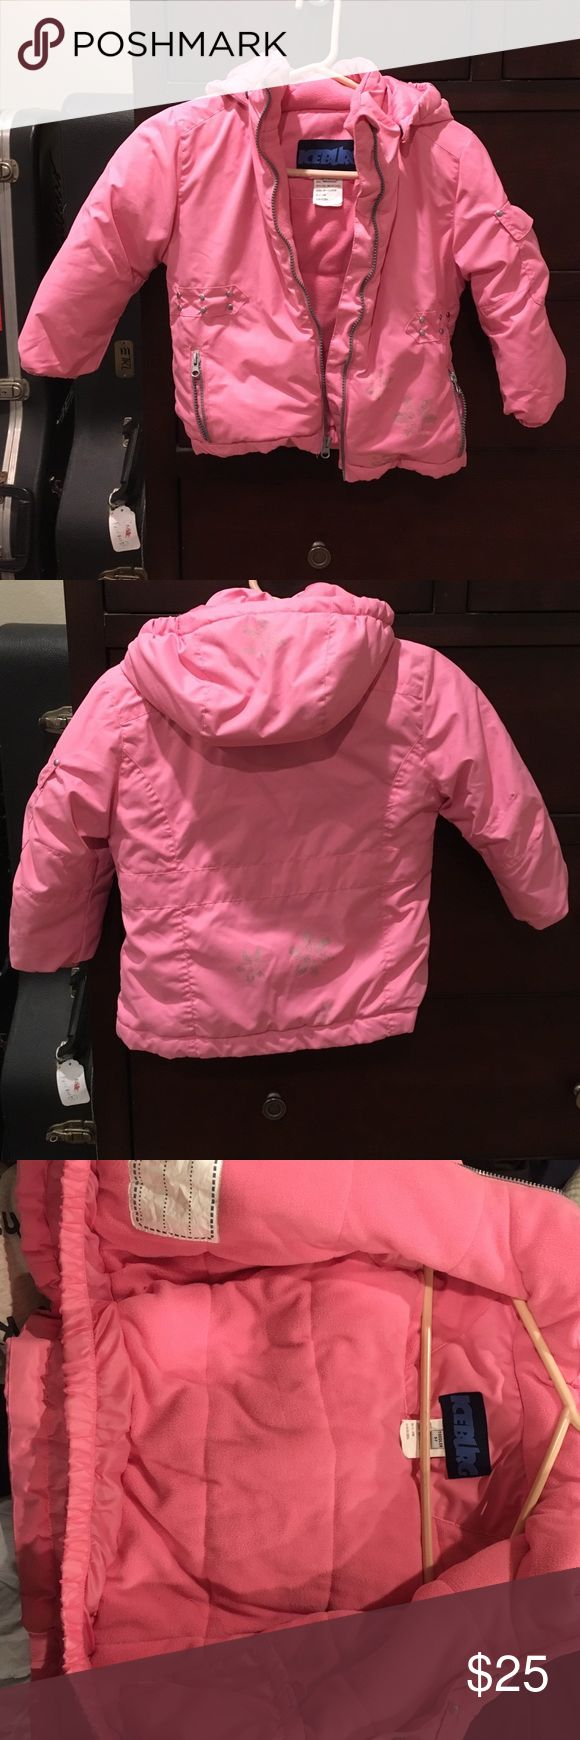 Pink Girls Snow Jacket 5T-5 Excellent condition girls snow jacket. Waterproof on outer and soft cozy fleece on inside. Size says 5T but my daughter wore when she was in a girls 5 and she is tall. Has removable hood, zipper pockets and inside elastic at waist. Measures 18 inches long. iceburg Jackets & Coats Puffers